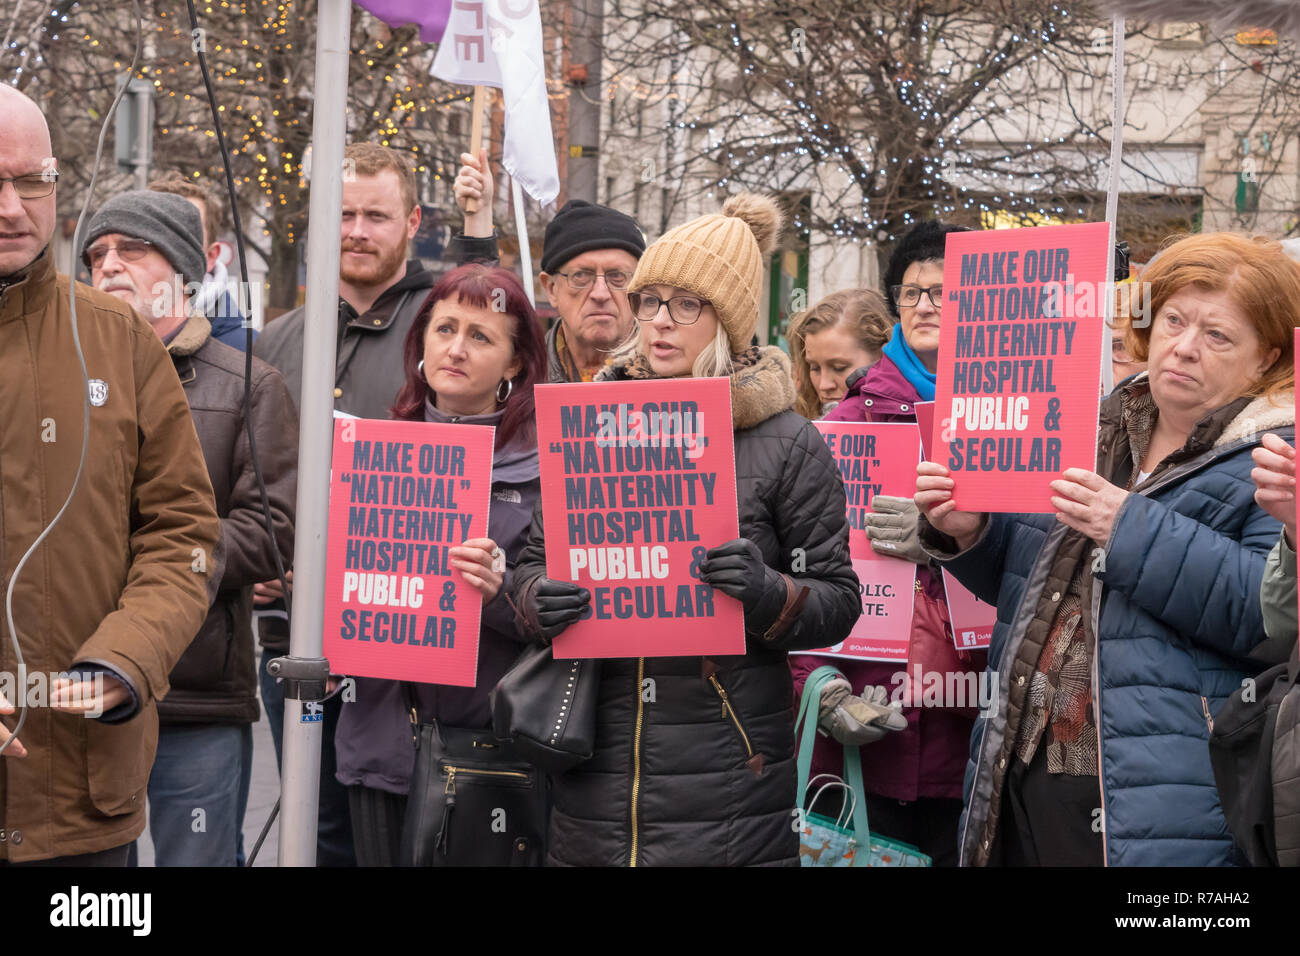 Dublin, Ireland. 8th December, 2018. Make Our National Maternity Hospital Public Demonstration. Featuring: Credit: Fabrice Jolivet Credit: Fabrice Jolivet Photography/Alamy Live News - Stock Image